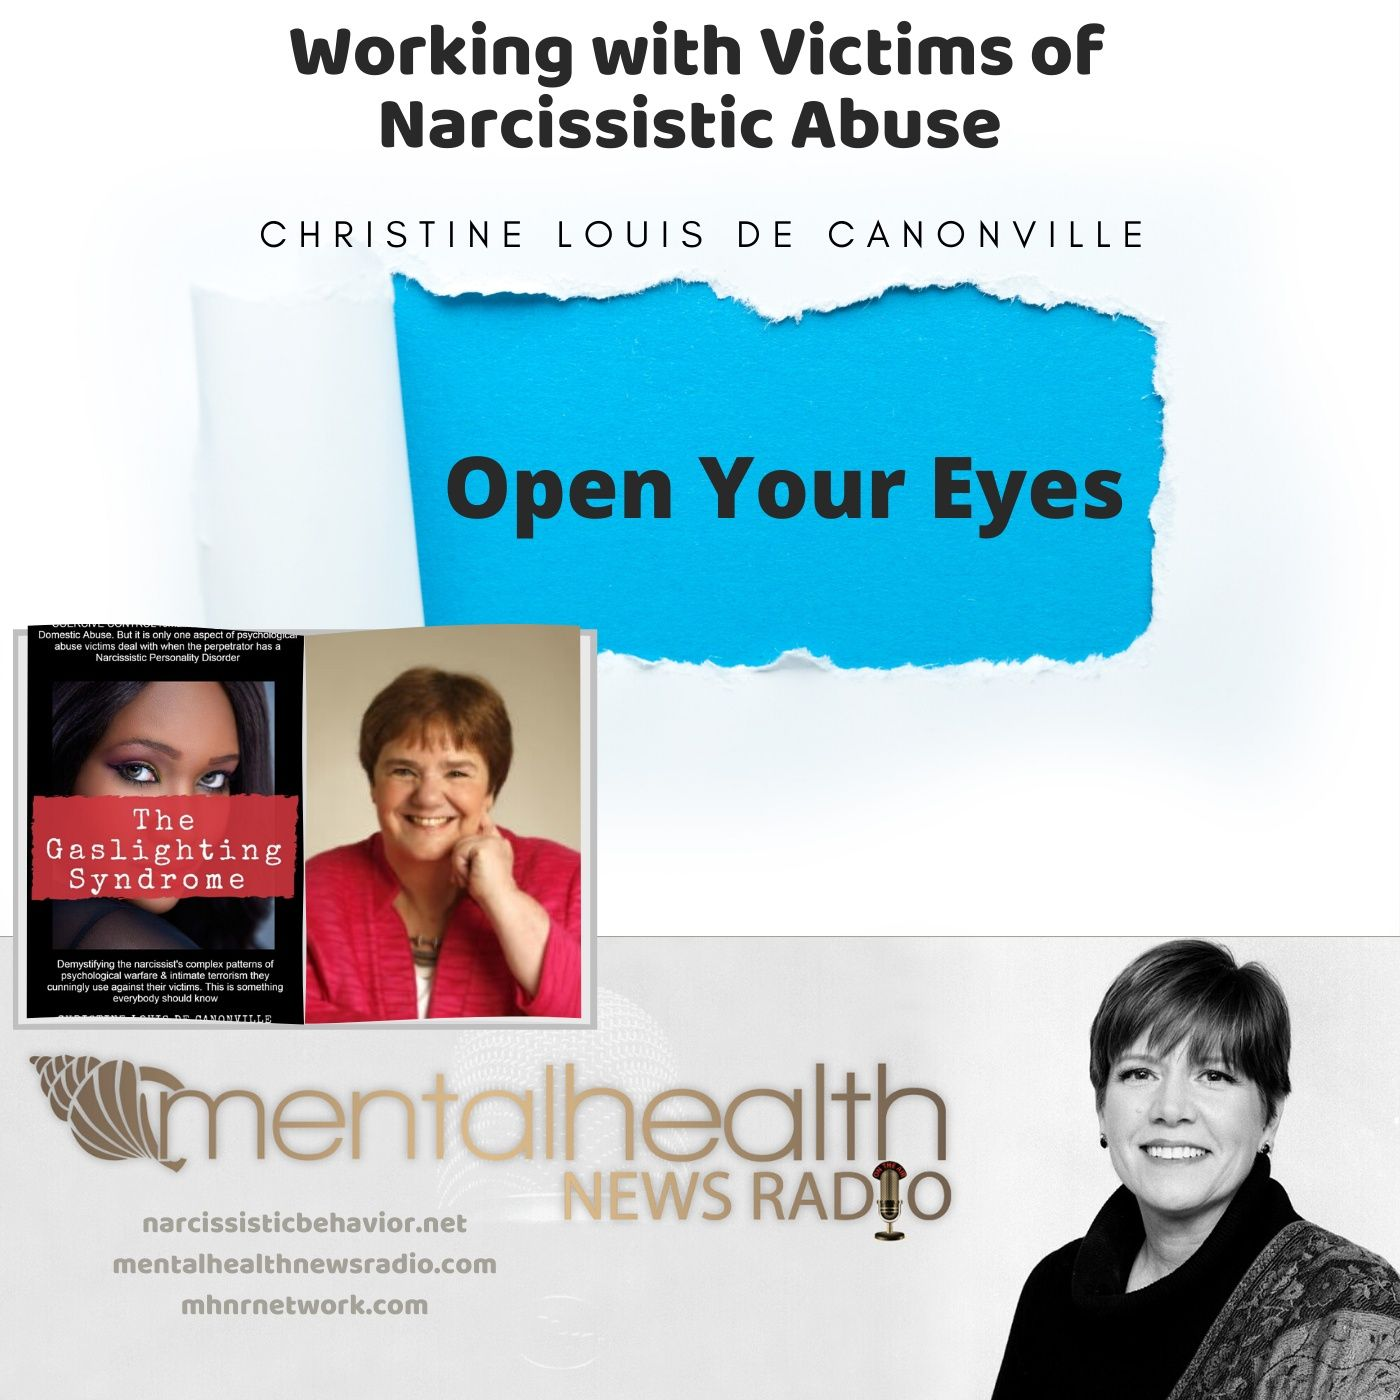 Mental Health News Radio - From the Archives: Working with Narcissistic Victim Abuse